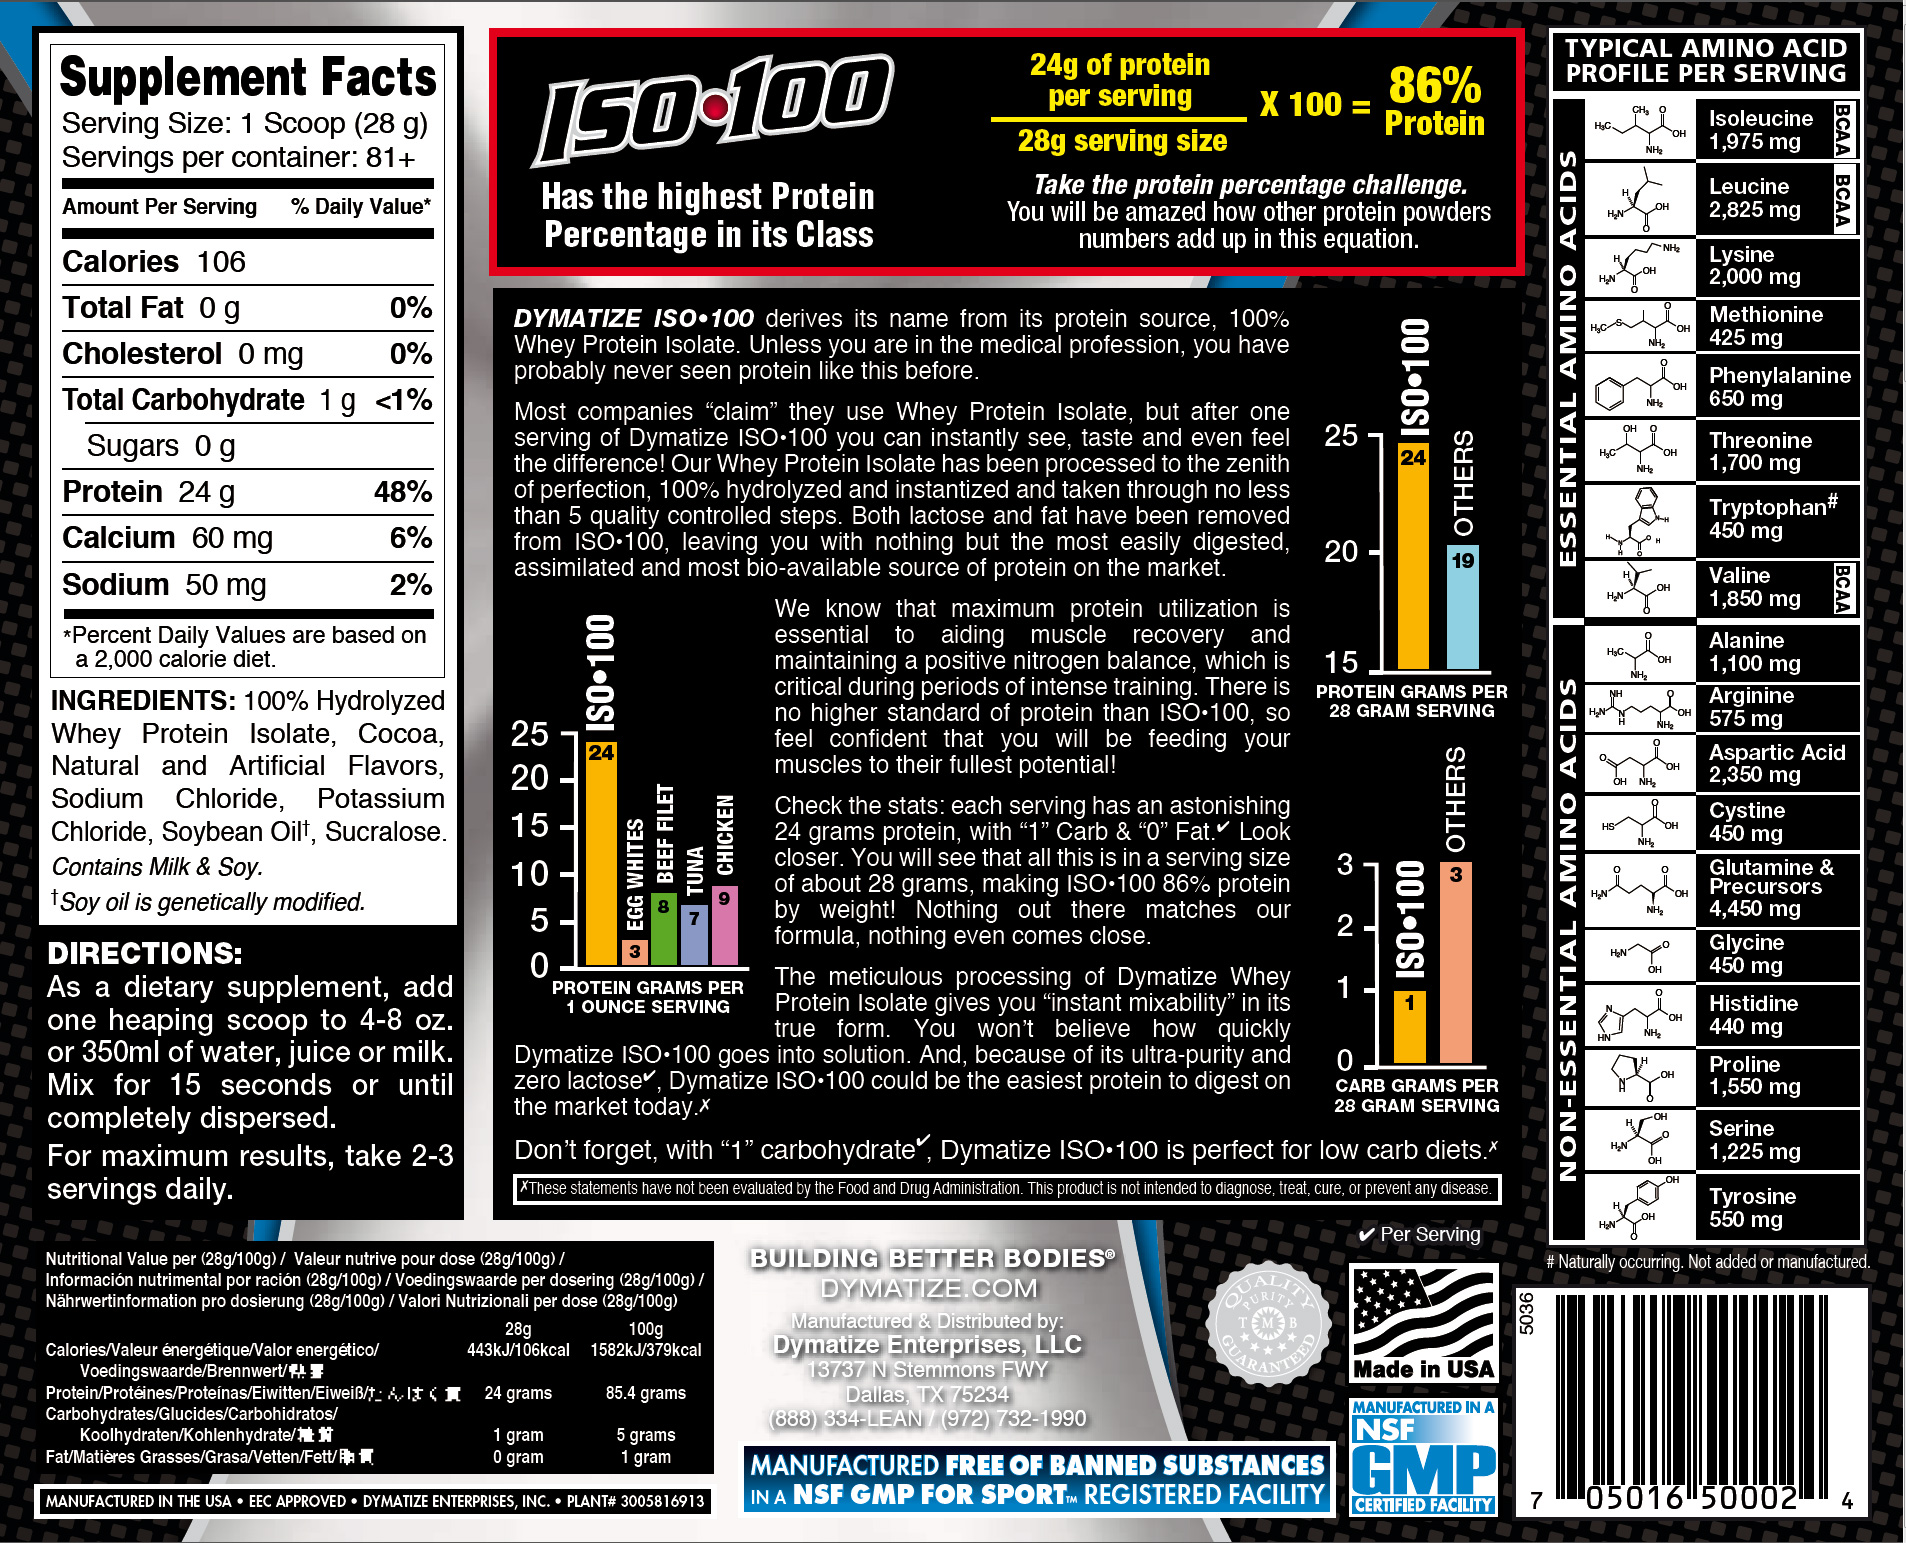 anabolic halo label